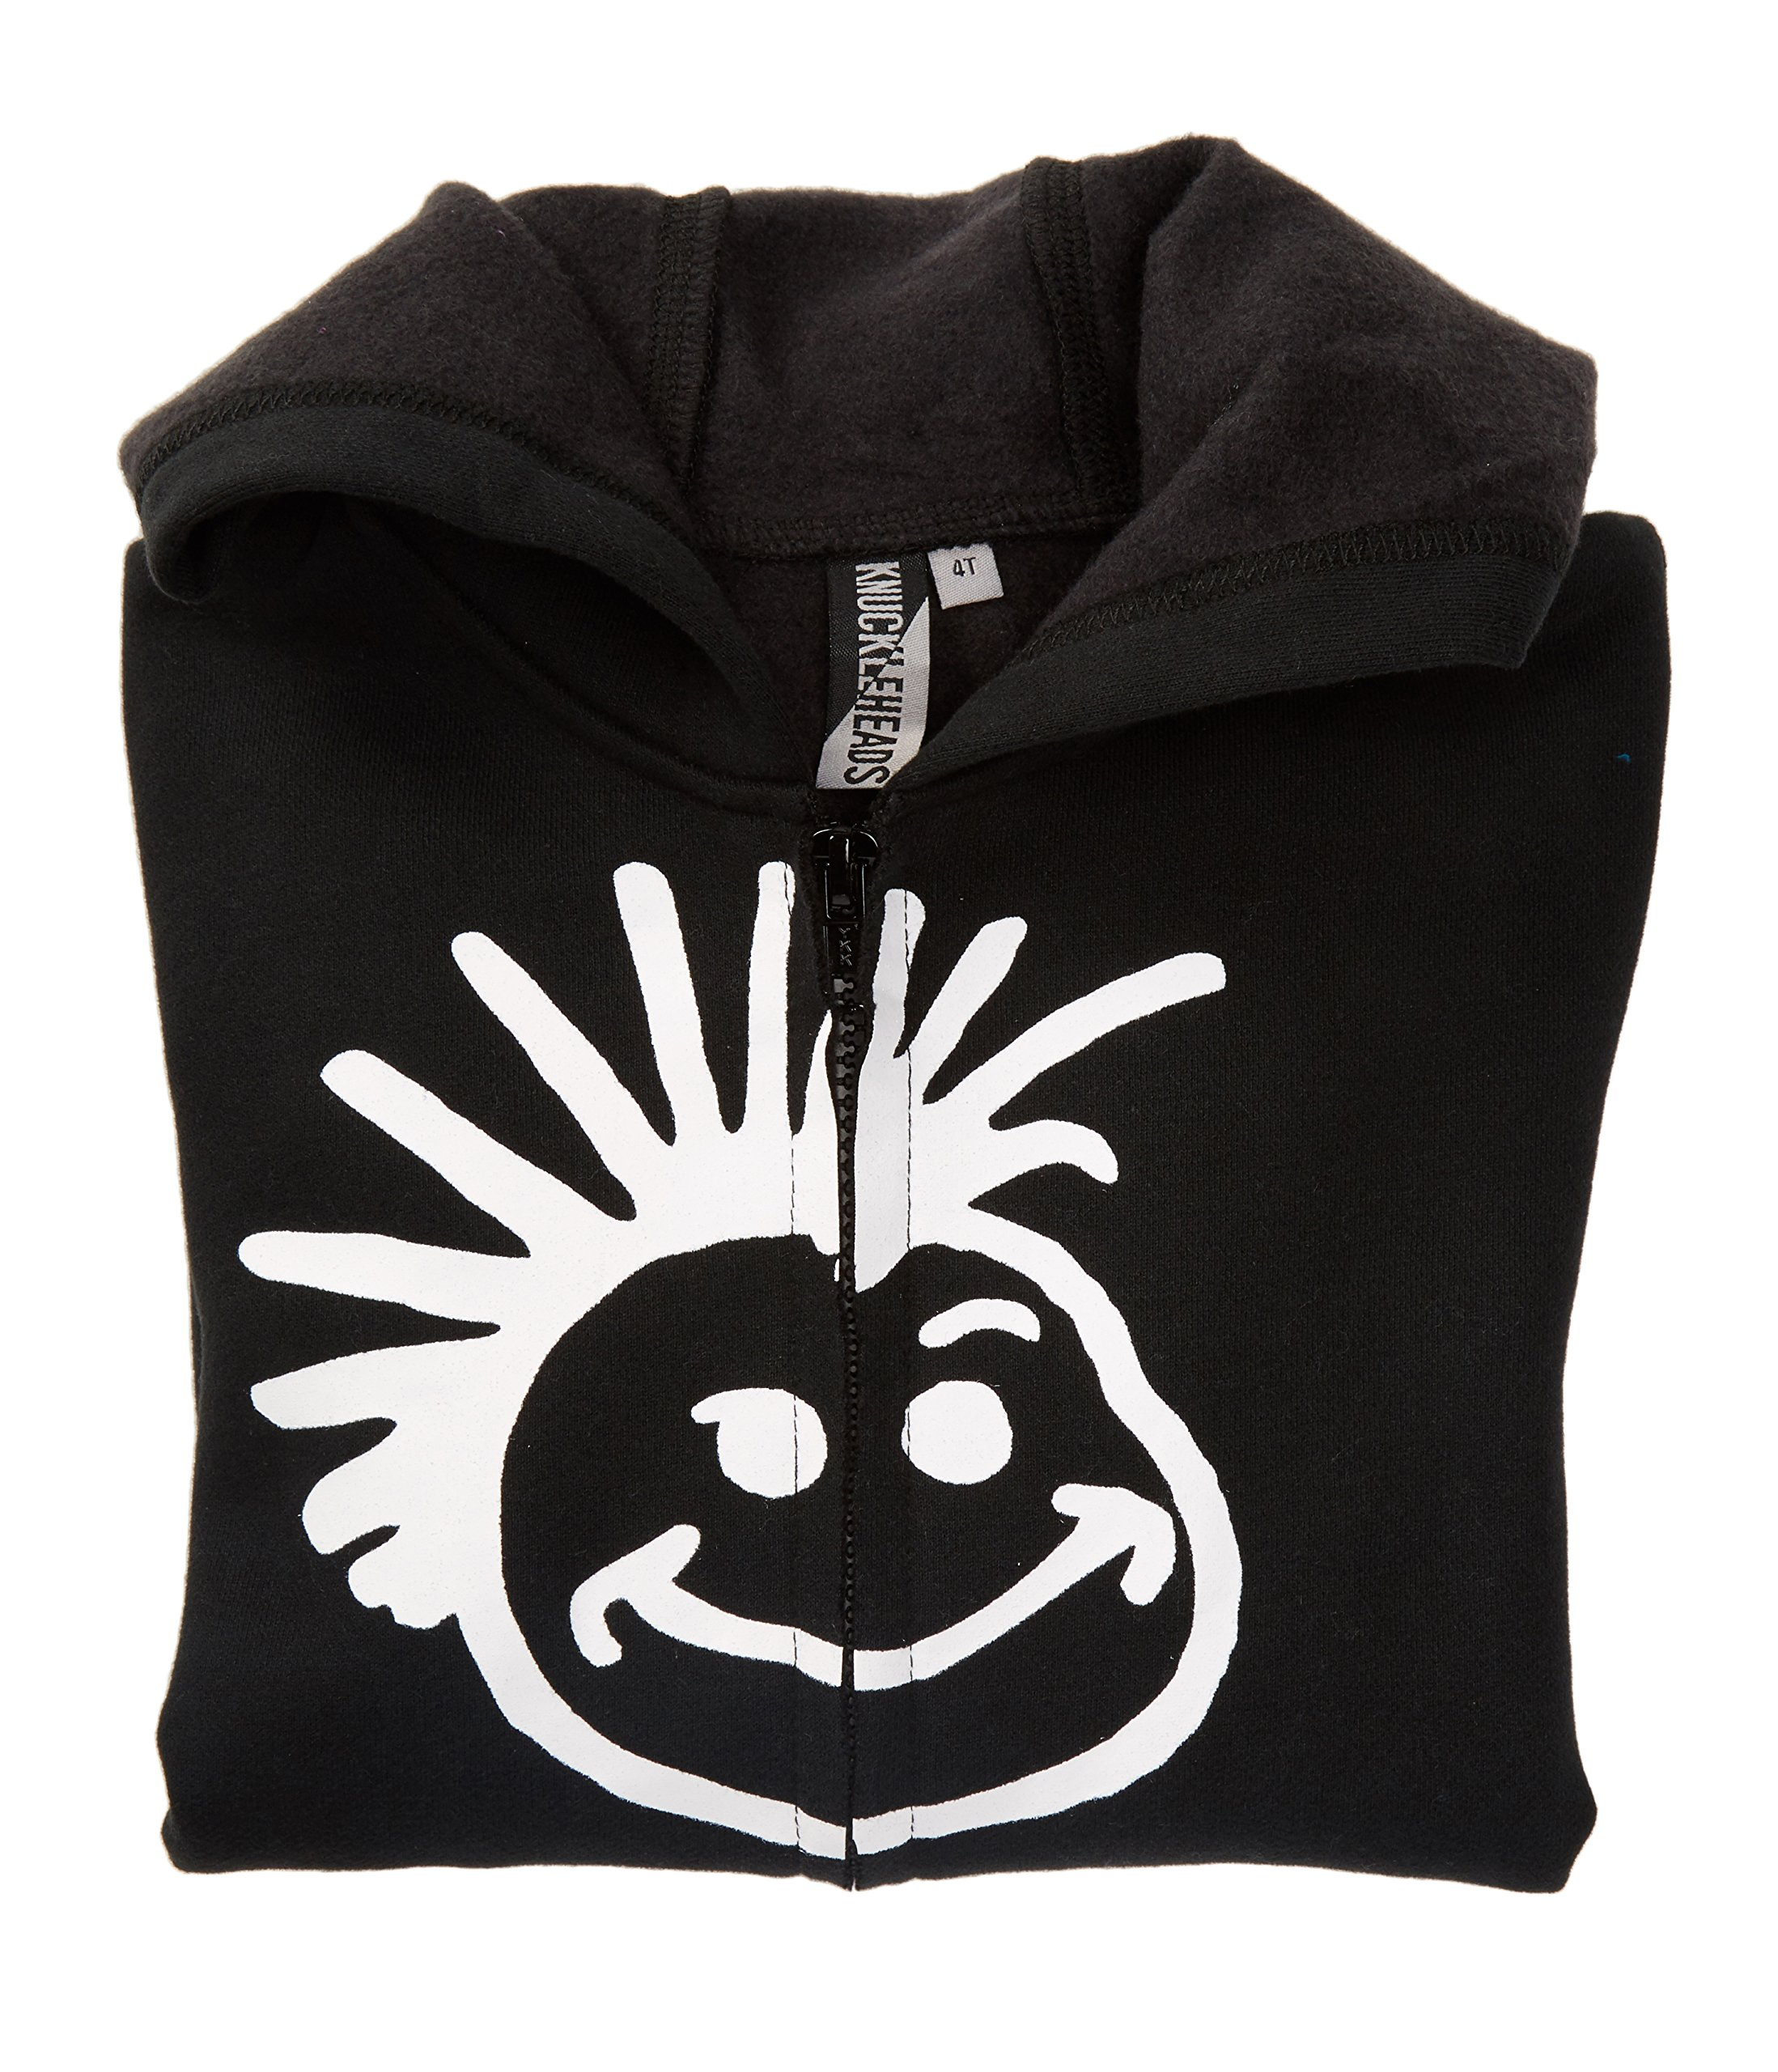 Born to Love Knuckleheads - Toddler Hooded Sweatshirt Boys Black Logo Pullover Zip Up Hoodie (8T) by Born to Love (Image #3)